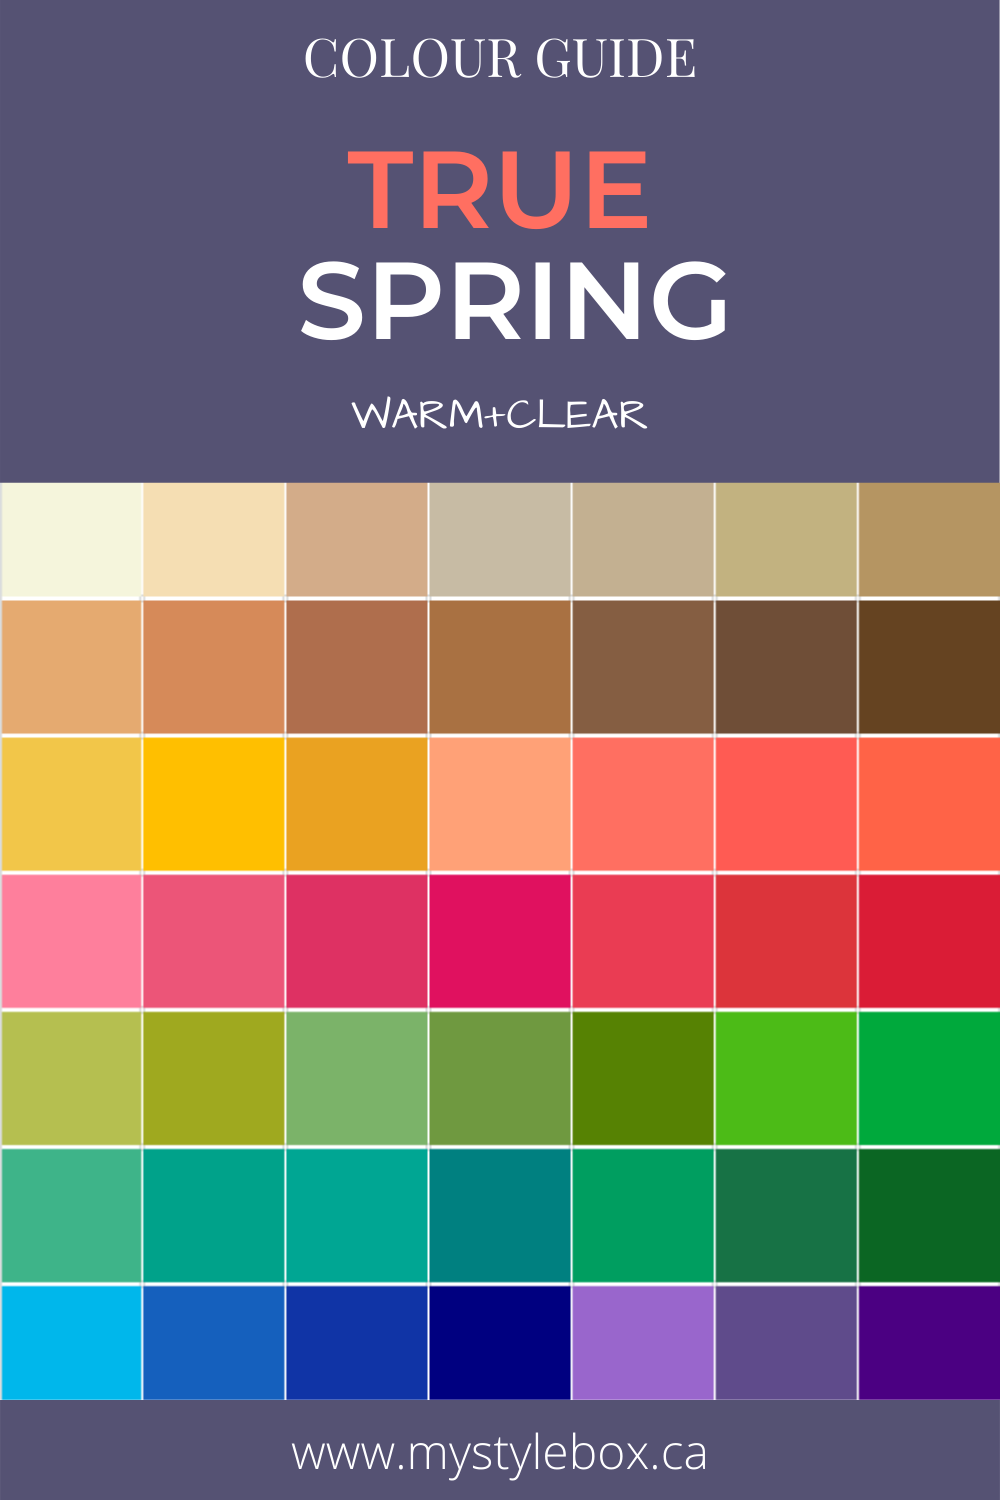 True Spring Colour Guide